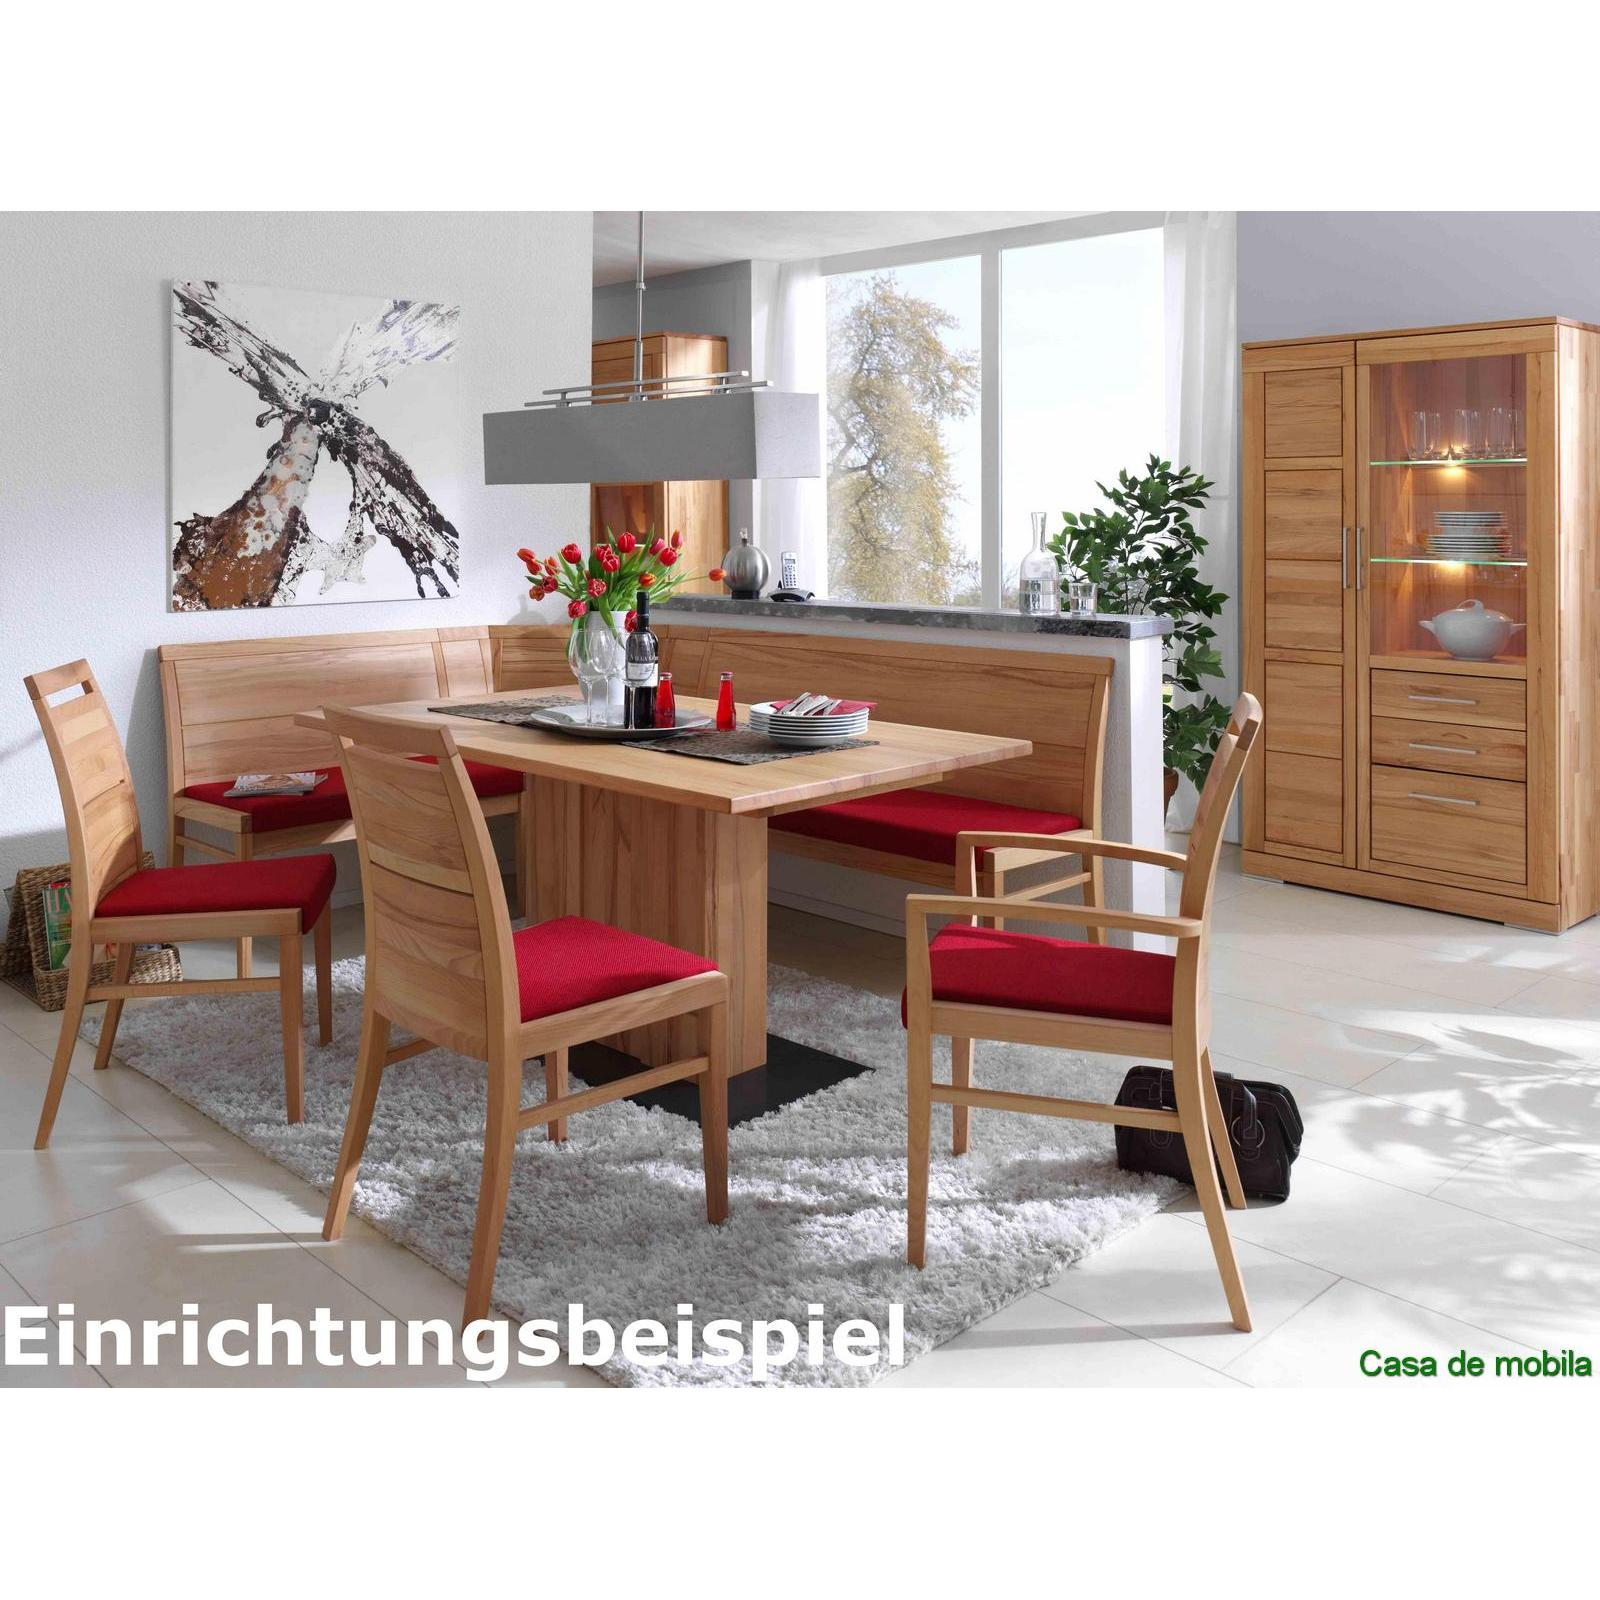 Bank mit r ckenlehne bank 130 cm kernbuche massiv natur for Esszimmer bank 200 cm